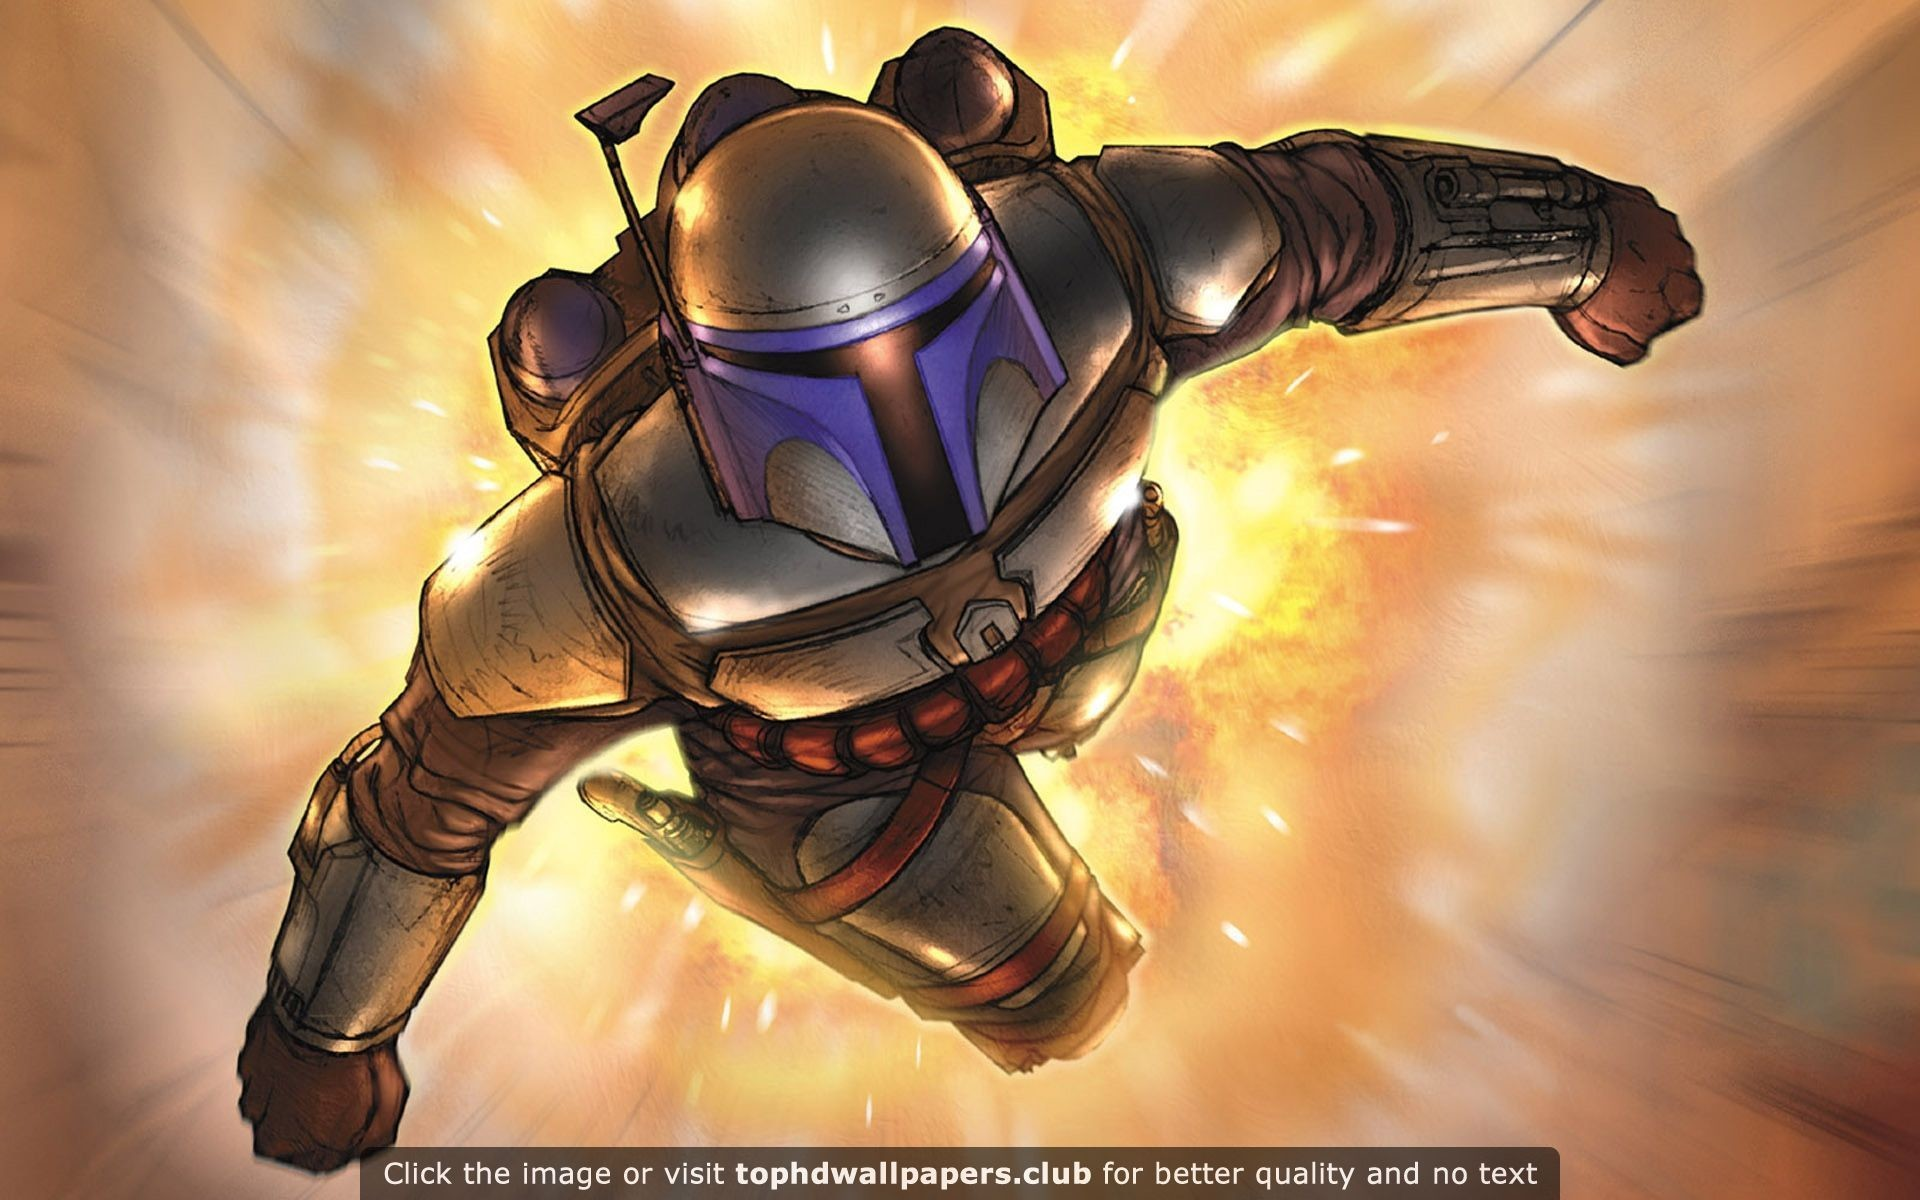 Star Wars Bounty Hunter 4K or HD wallpaper for your PC, Mac or .